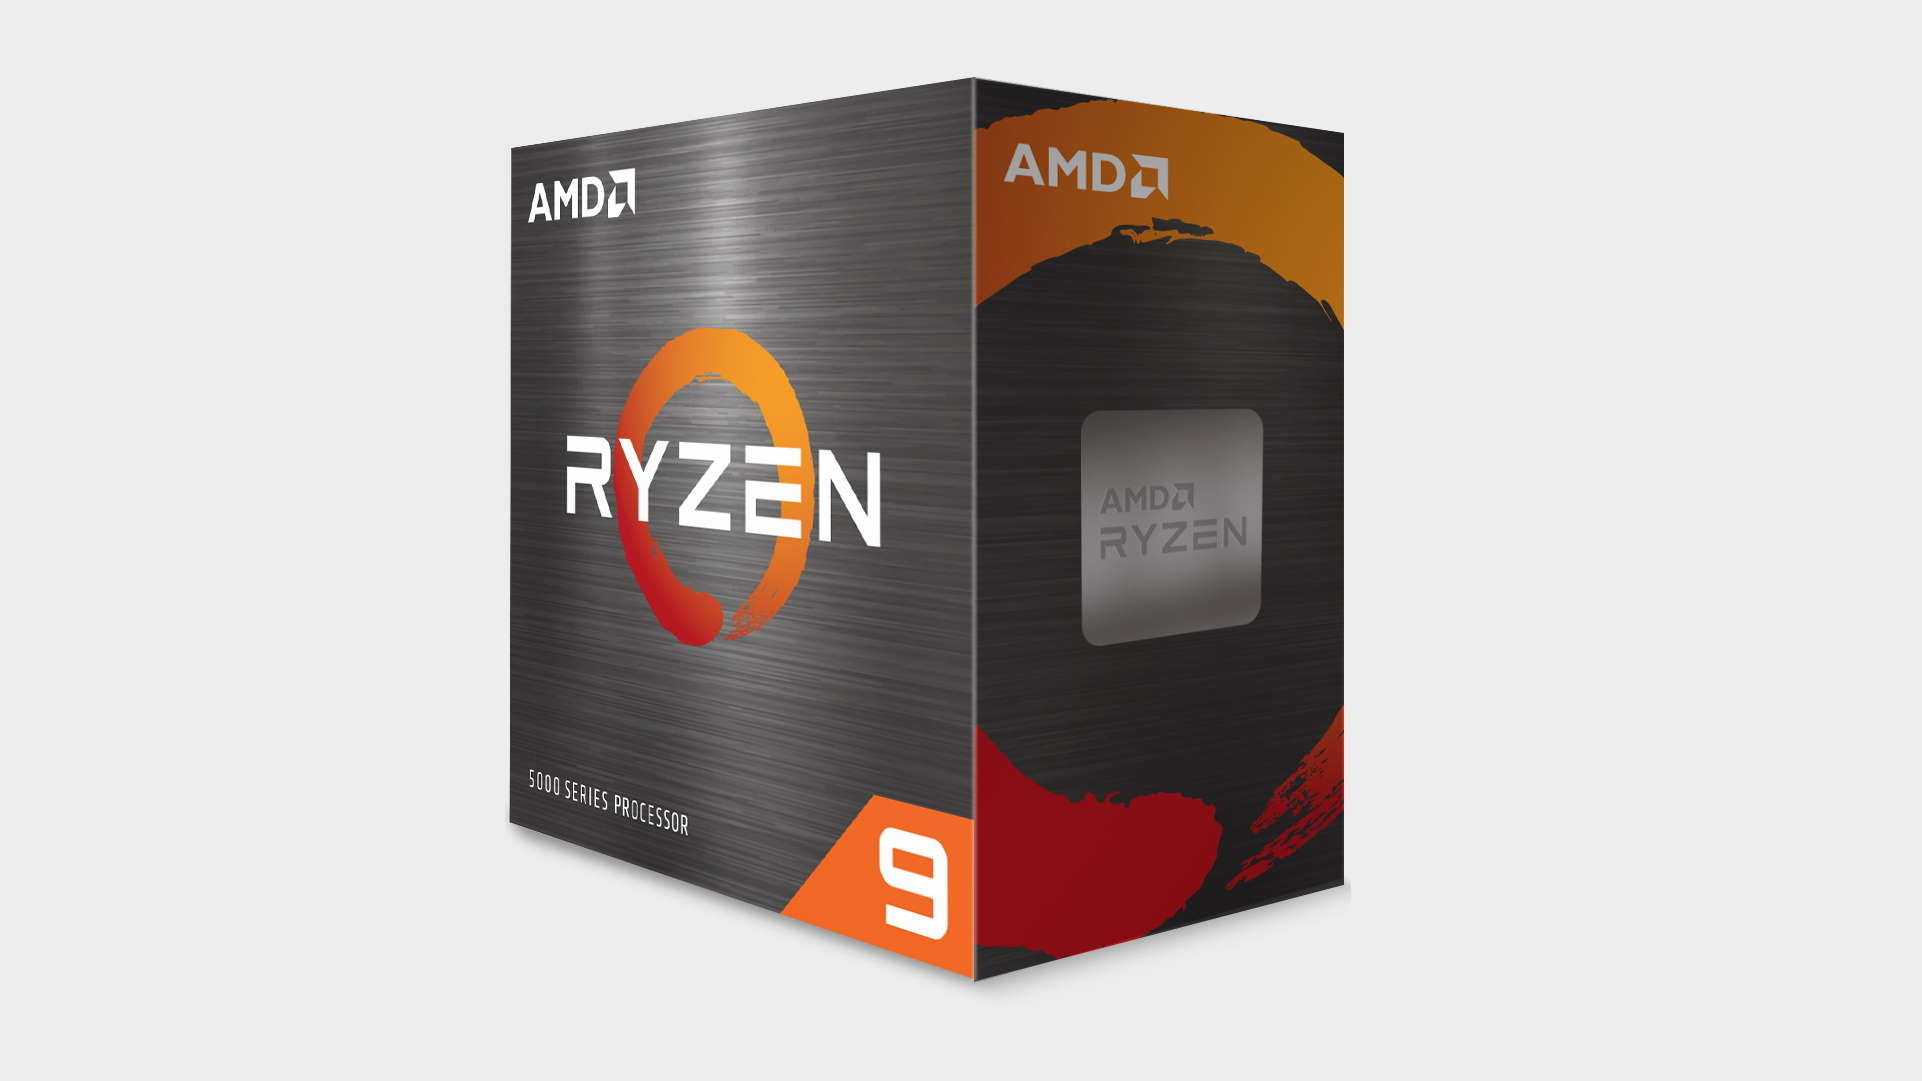 AMD's Ryzen 9 5900 would be the best gaming CPU if they existed and we could actually buy one